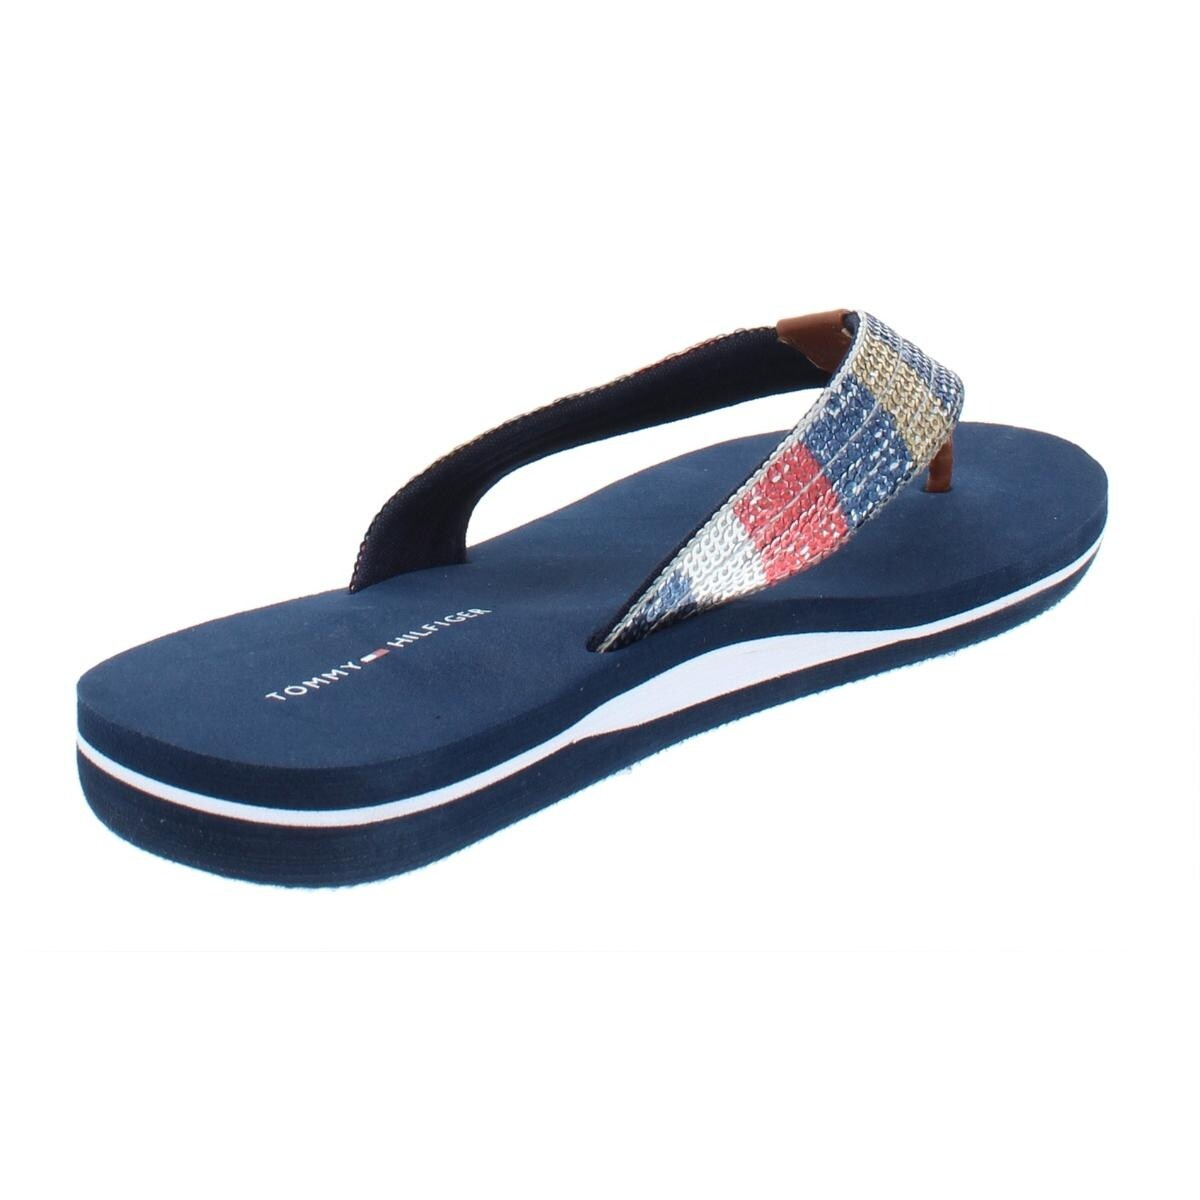 4b3483b4 Shop Tommy Hilfiger Womens Contina Flip-Flops Thong Sequined - On Sale -  Free Shipping On Orders Over $45 - Overstock - 27584943